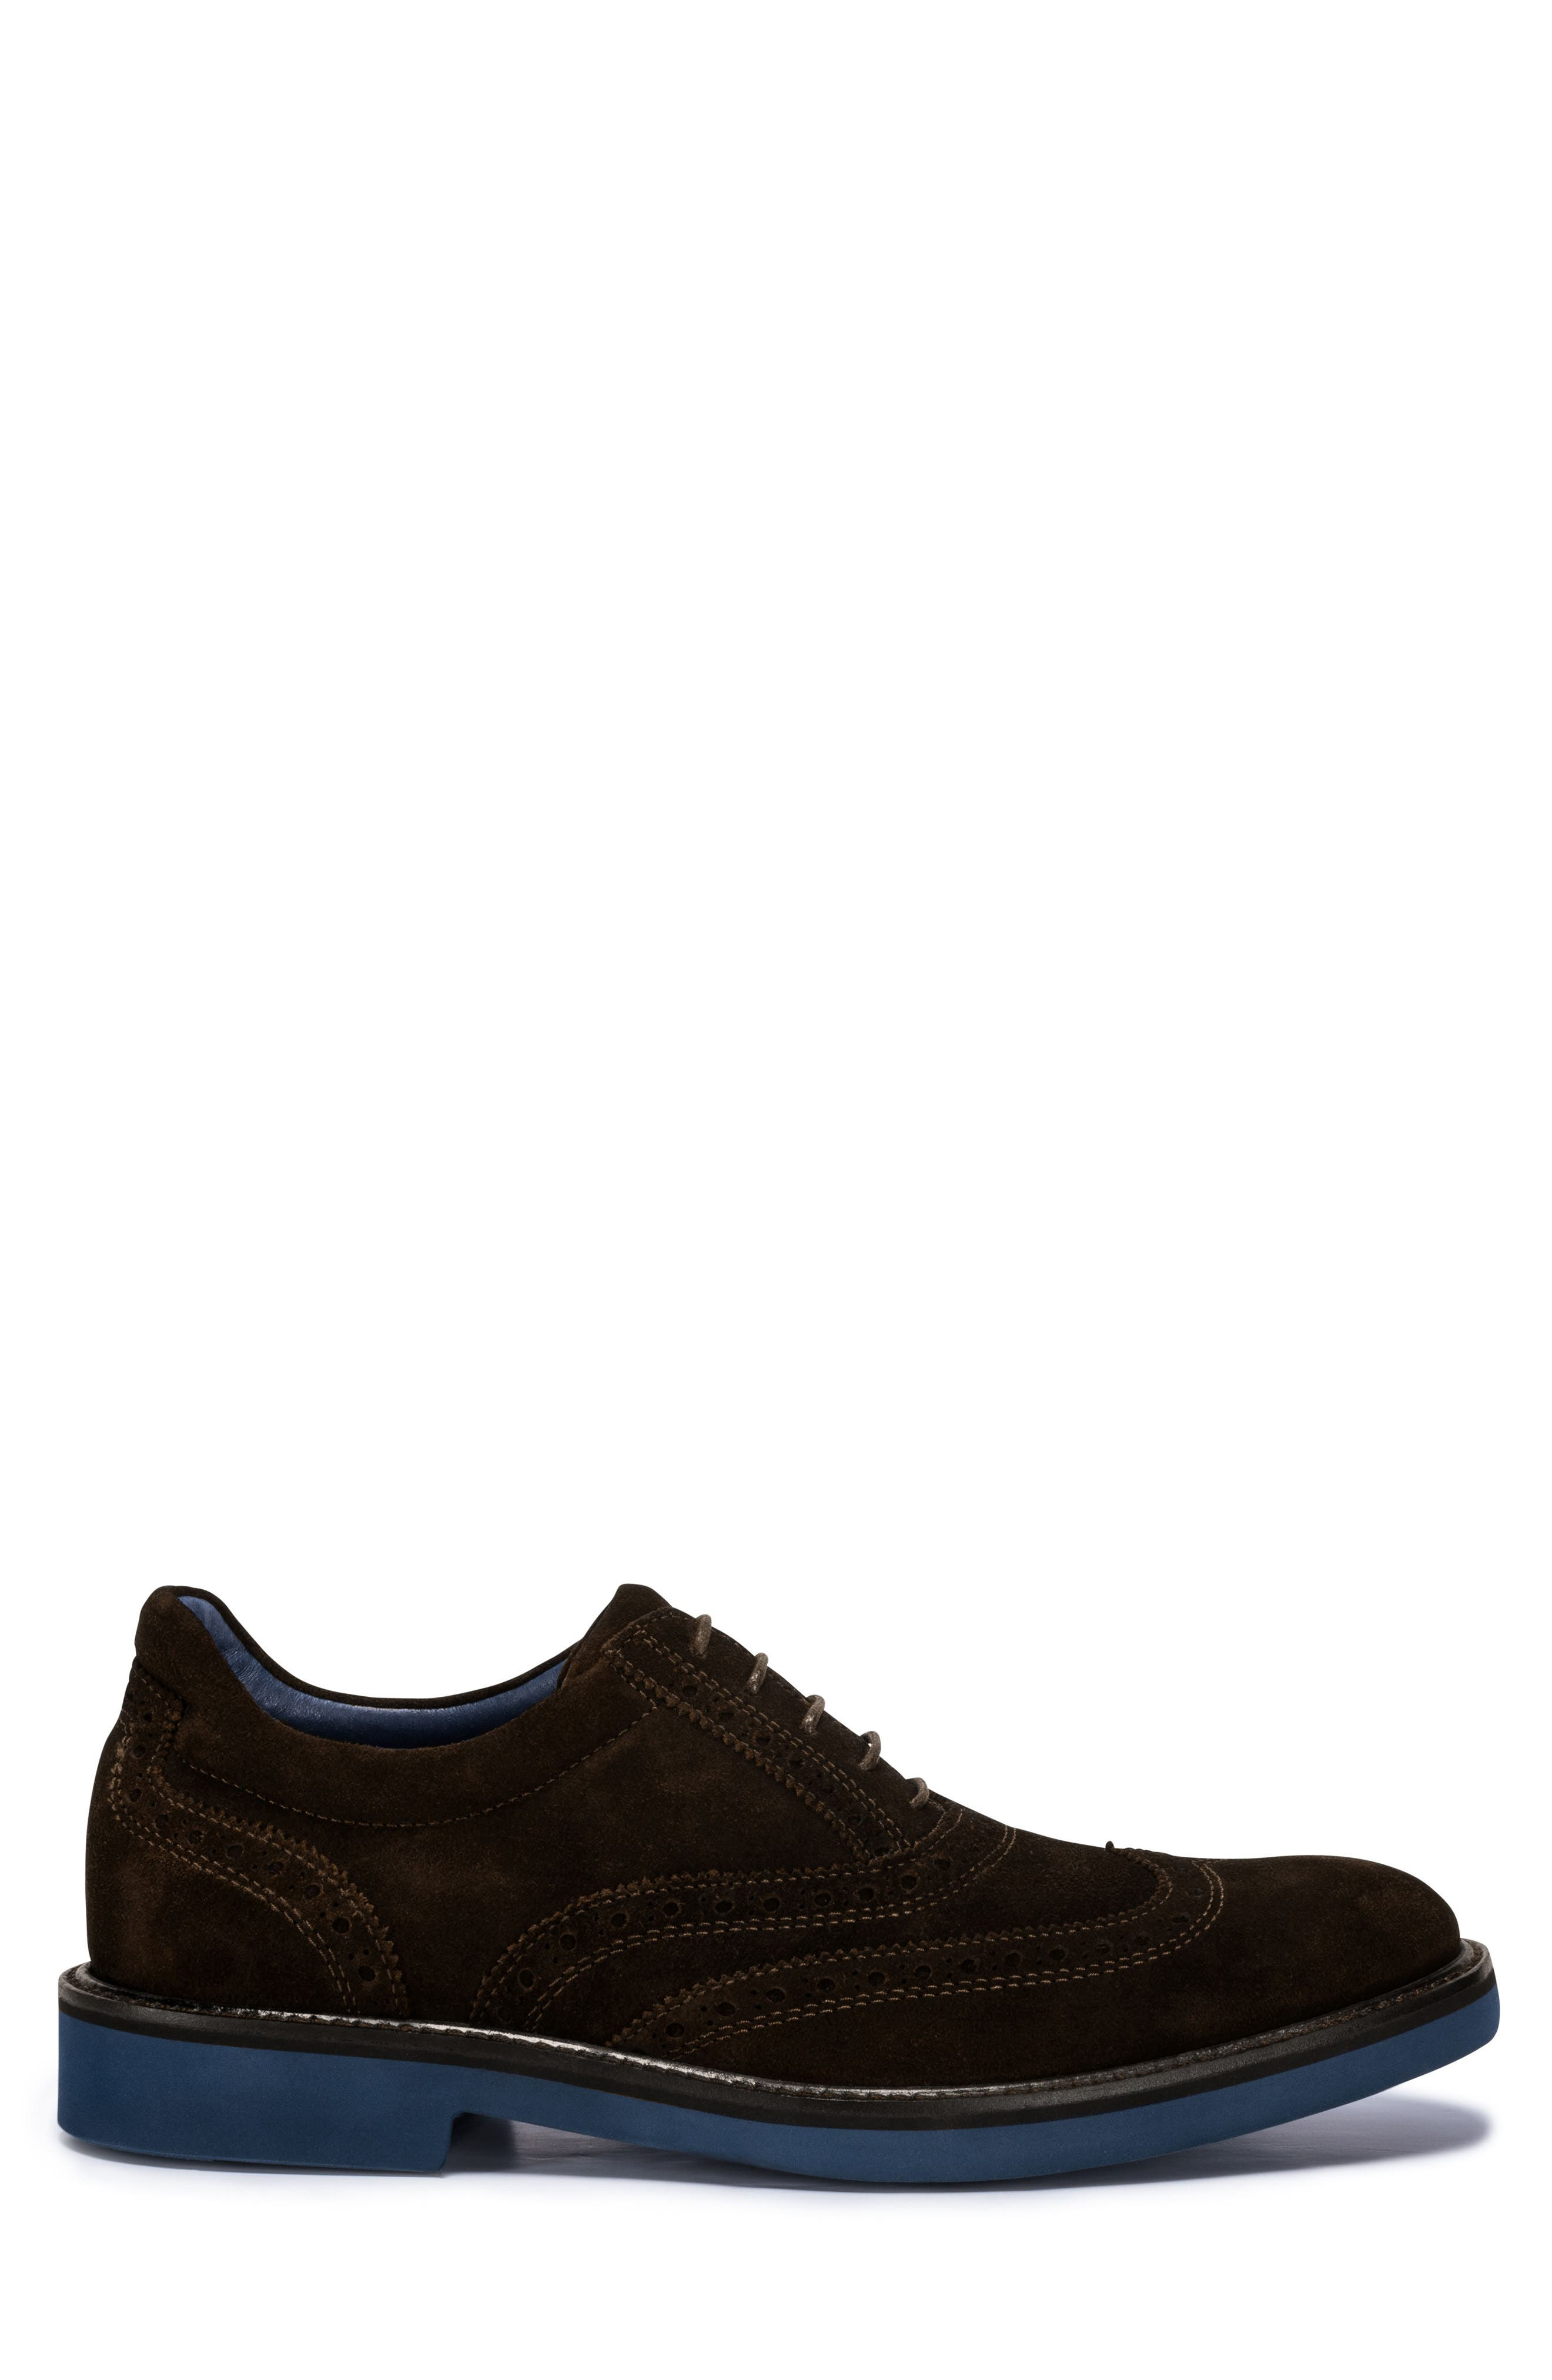 Sorento Wingtip,                             Alternate thumbnail 3, color,                             Brown Leather